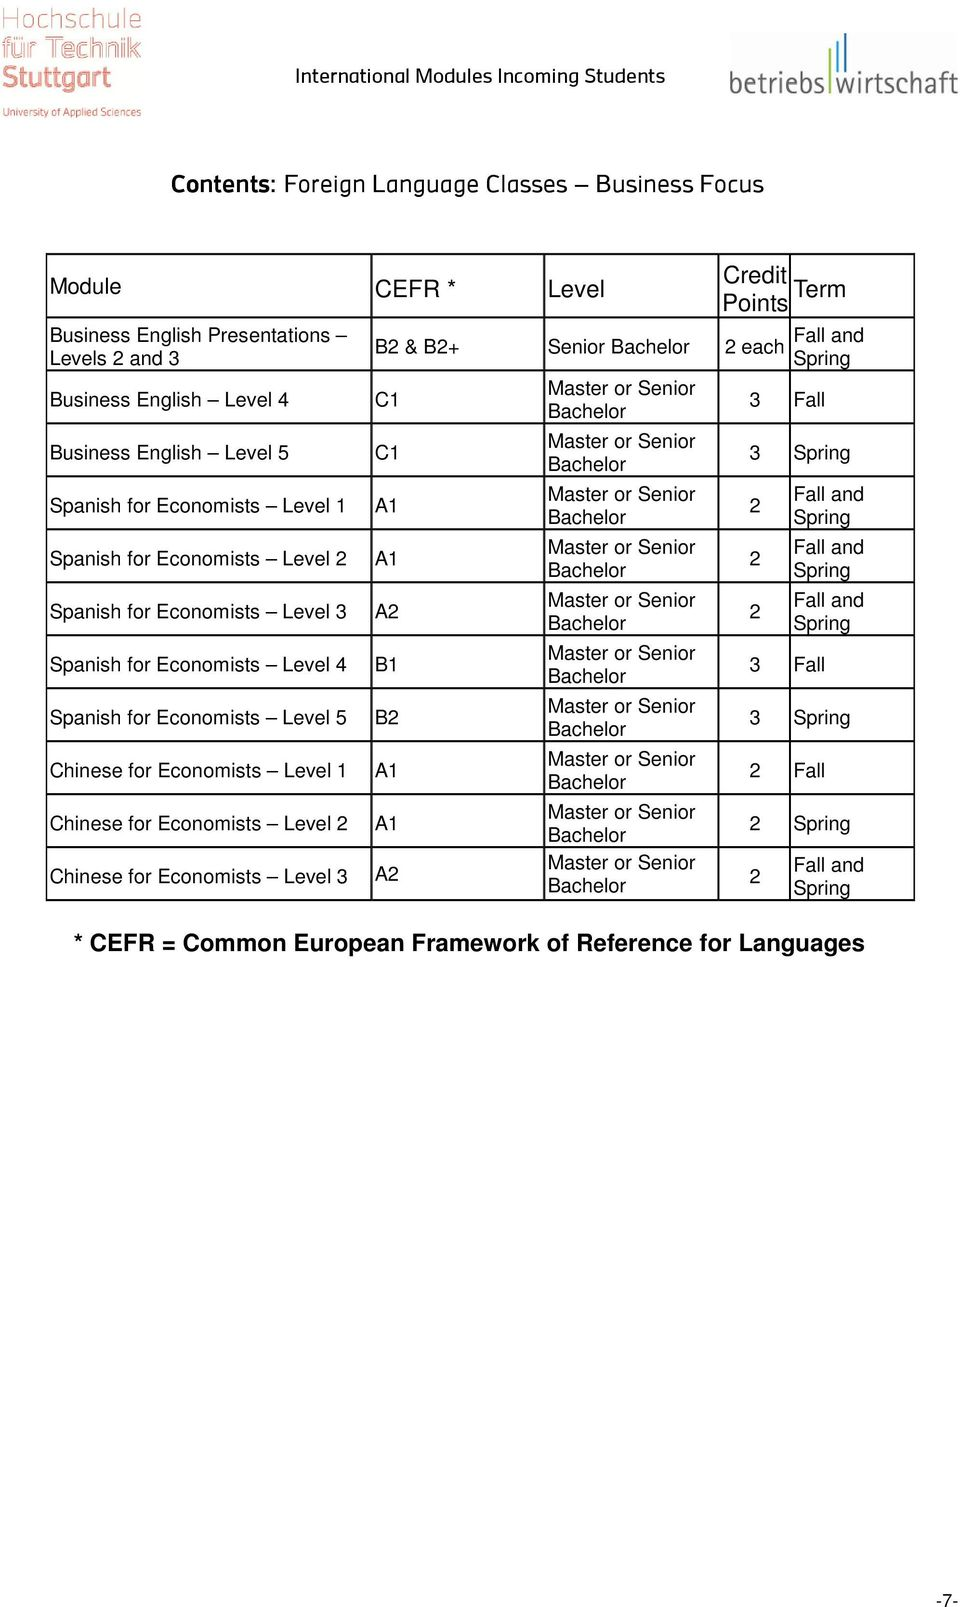 A1 Spanish for Economists Level 3 A2 Spanish for Economists Level 4 B1 Spanish for Economists Level 5 B2 Chinese for Economists Level 1 A1 Chinese for Economists Level 2 A1 Chinese for Economists